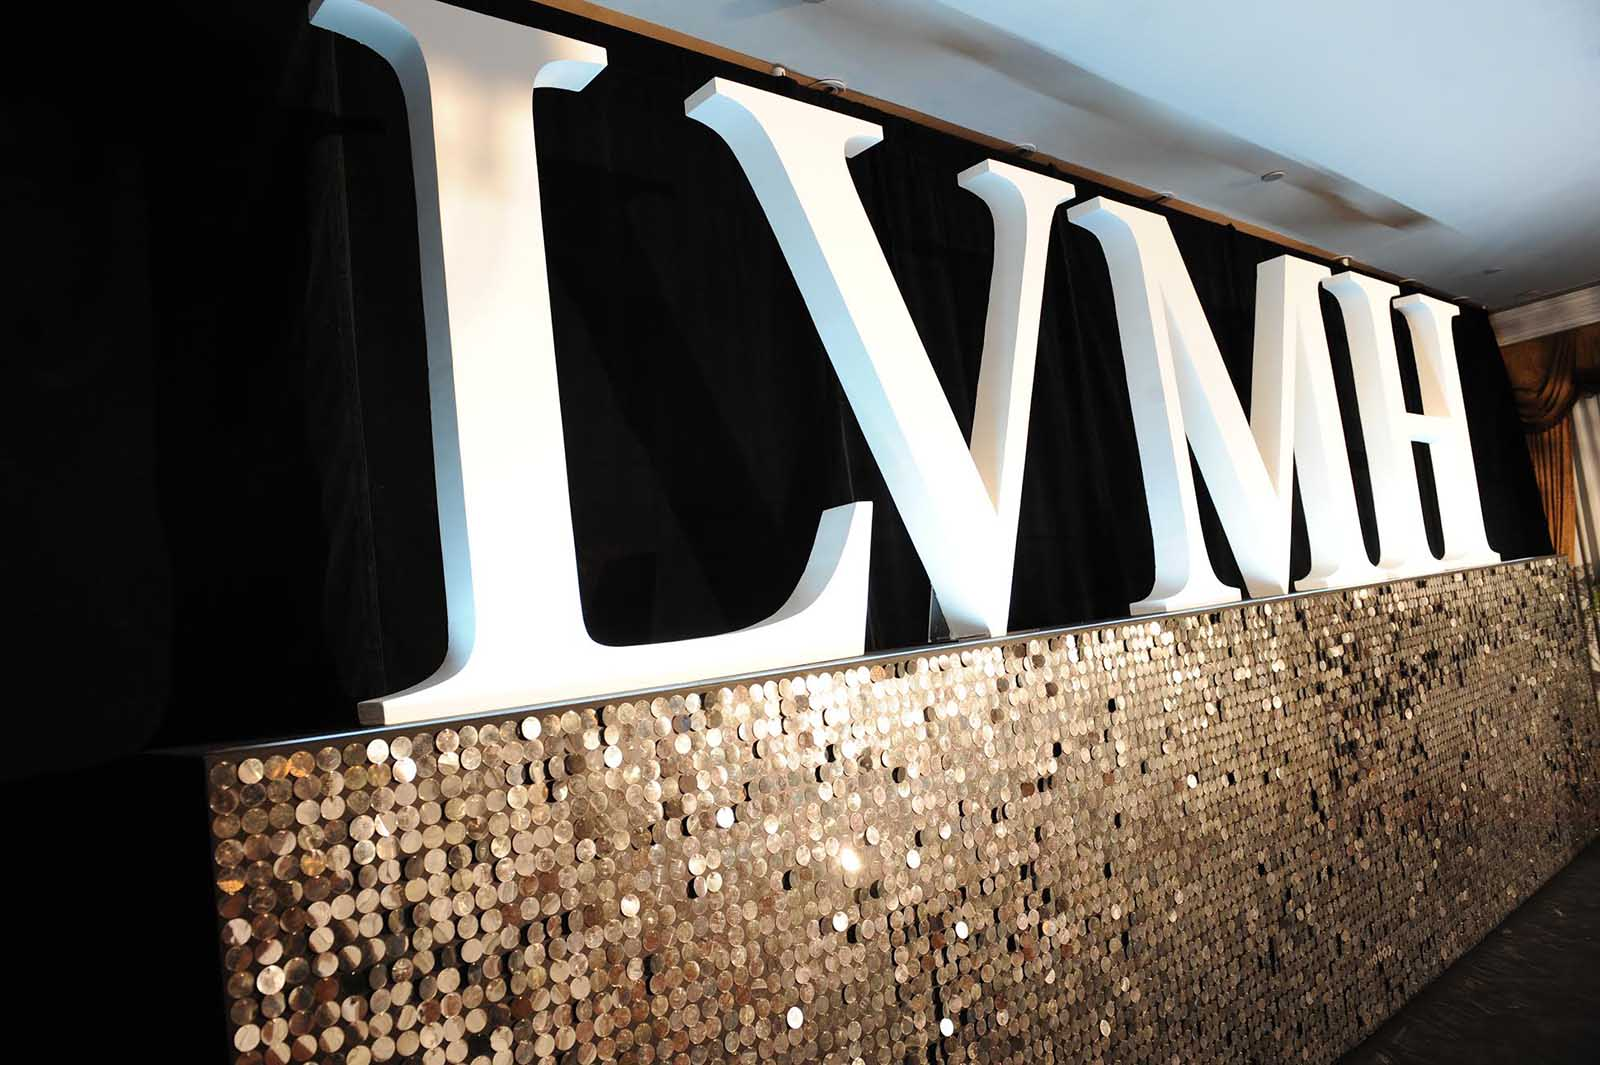 LVMH has some of the biggest fashion brands under its belt. But are they adding collaboration with Tiffany? See the New Deal between the two companies.